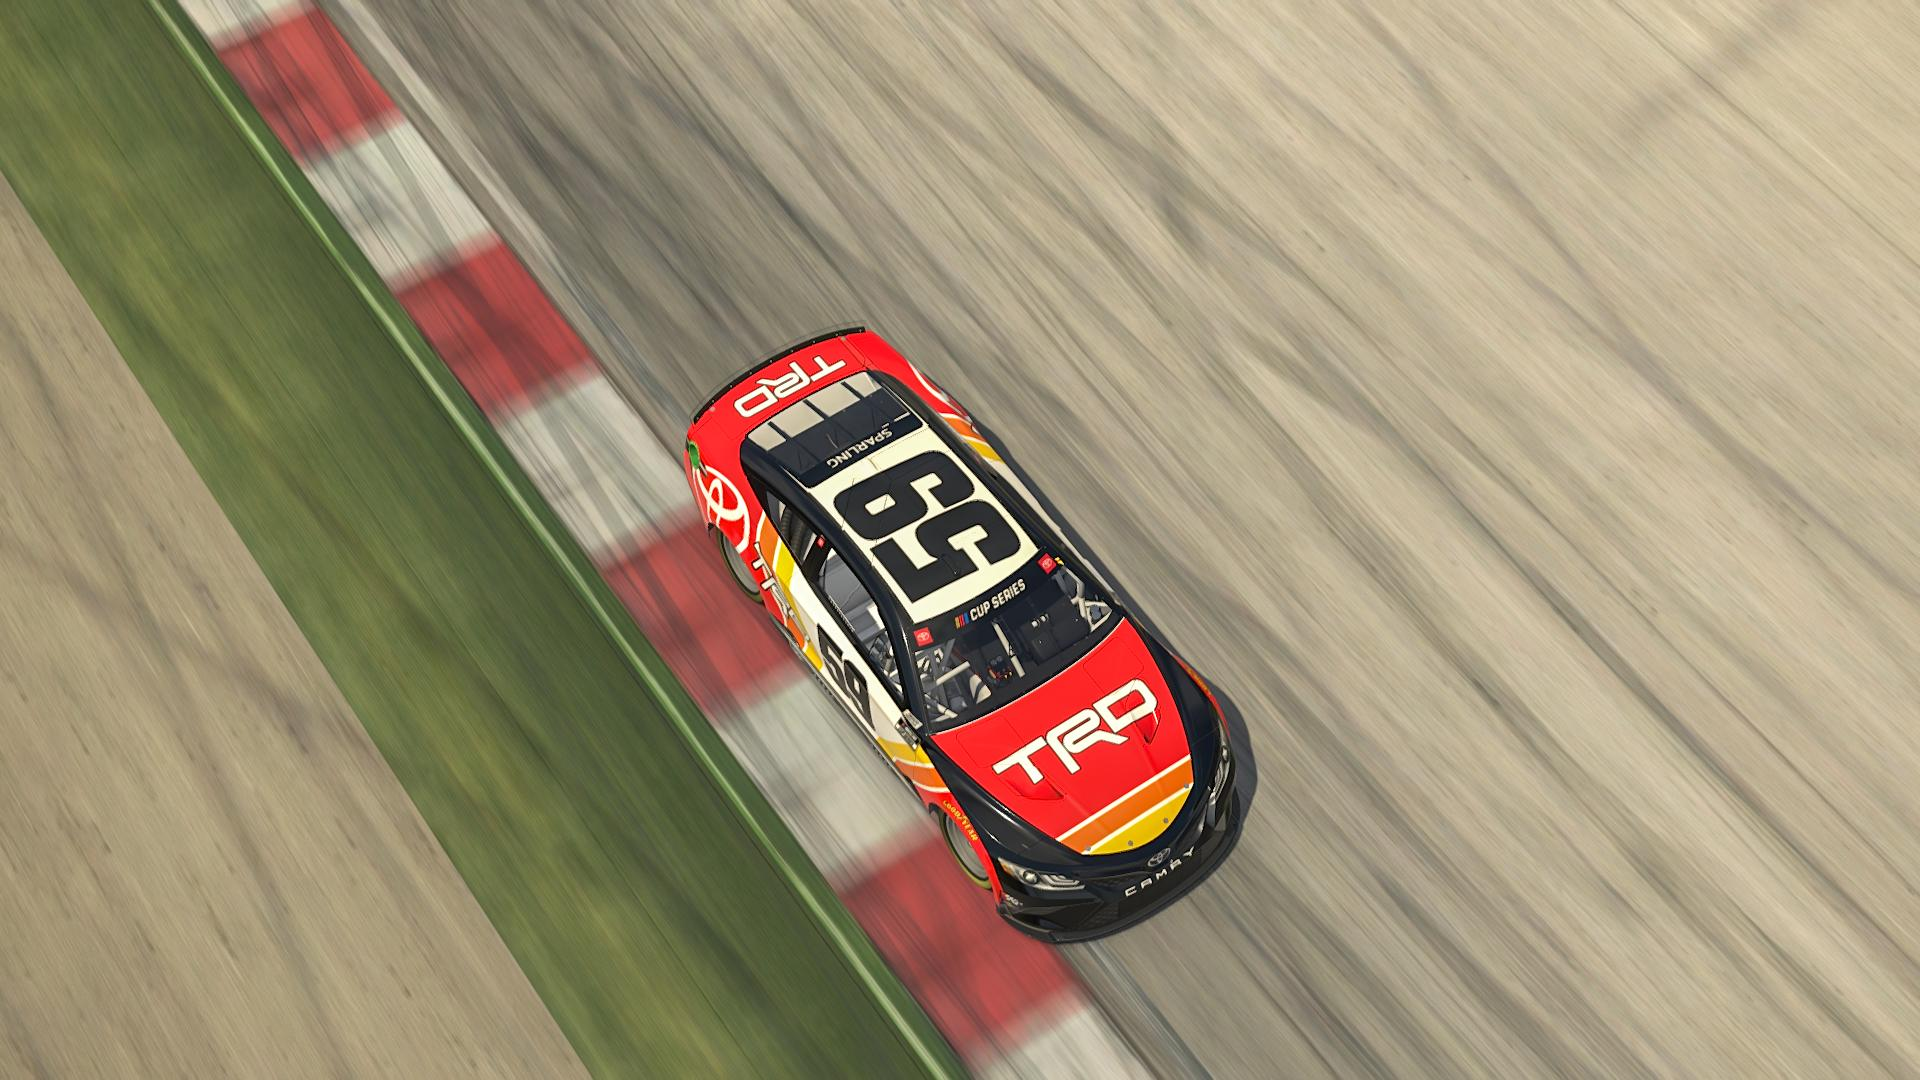 Preview of TRD Toyota Camry Sim Stamp/No Number by Blaine Sparling